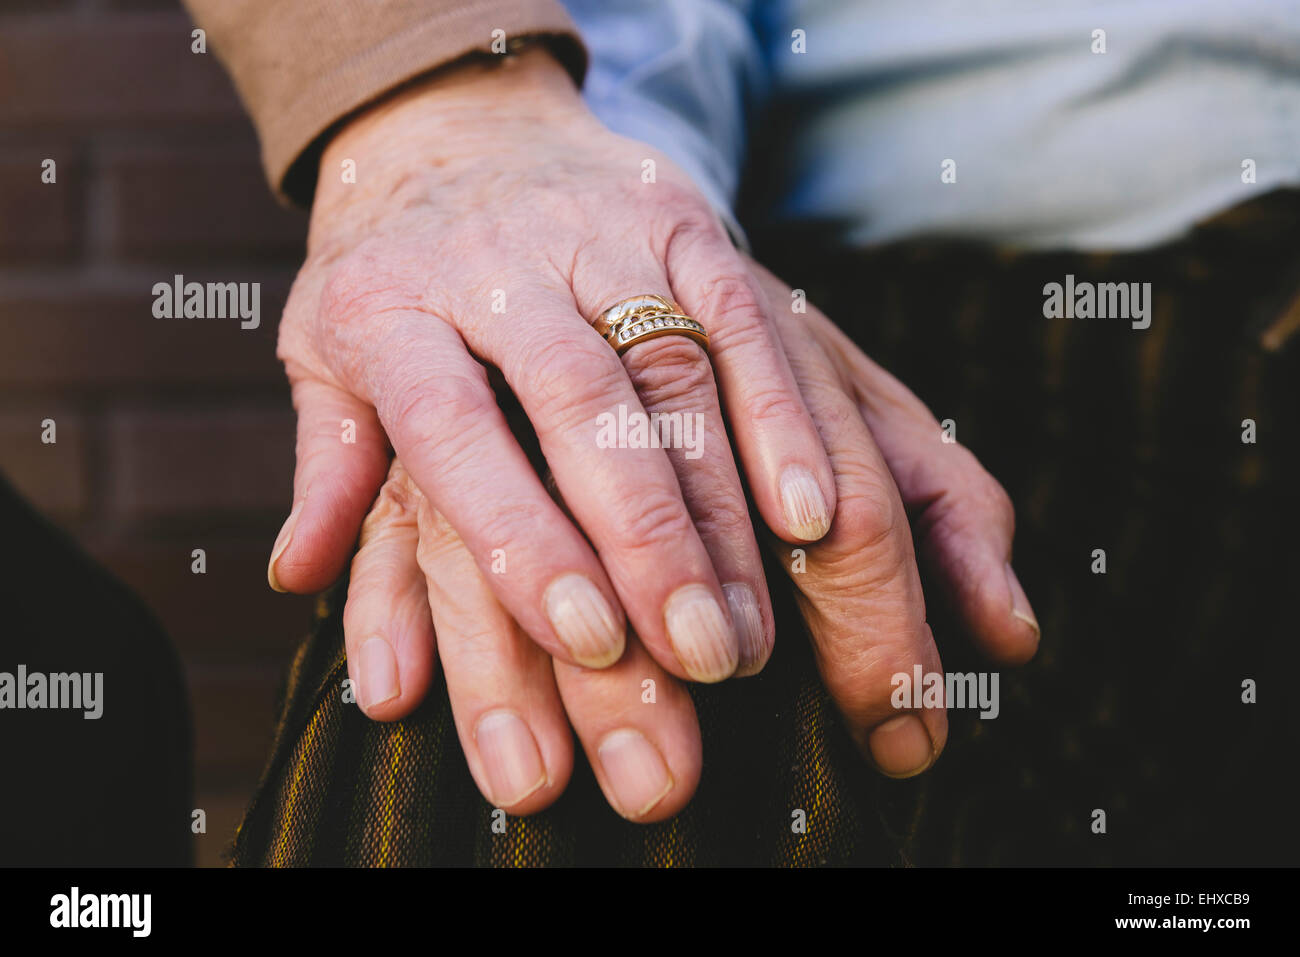 Wedding Ring On Old Hand Stock Photos & Wedding Ring On Old Hand ...